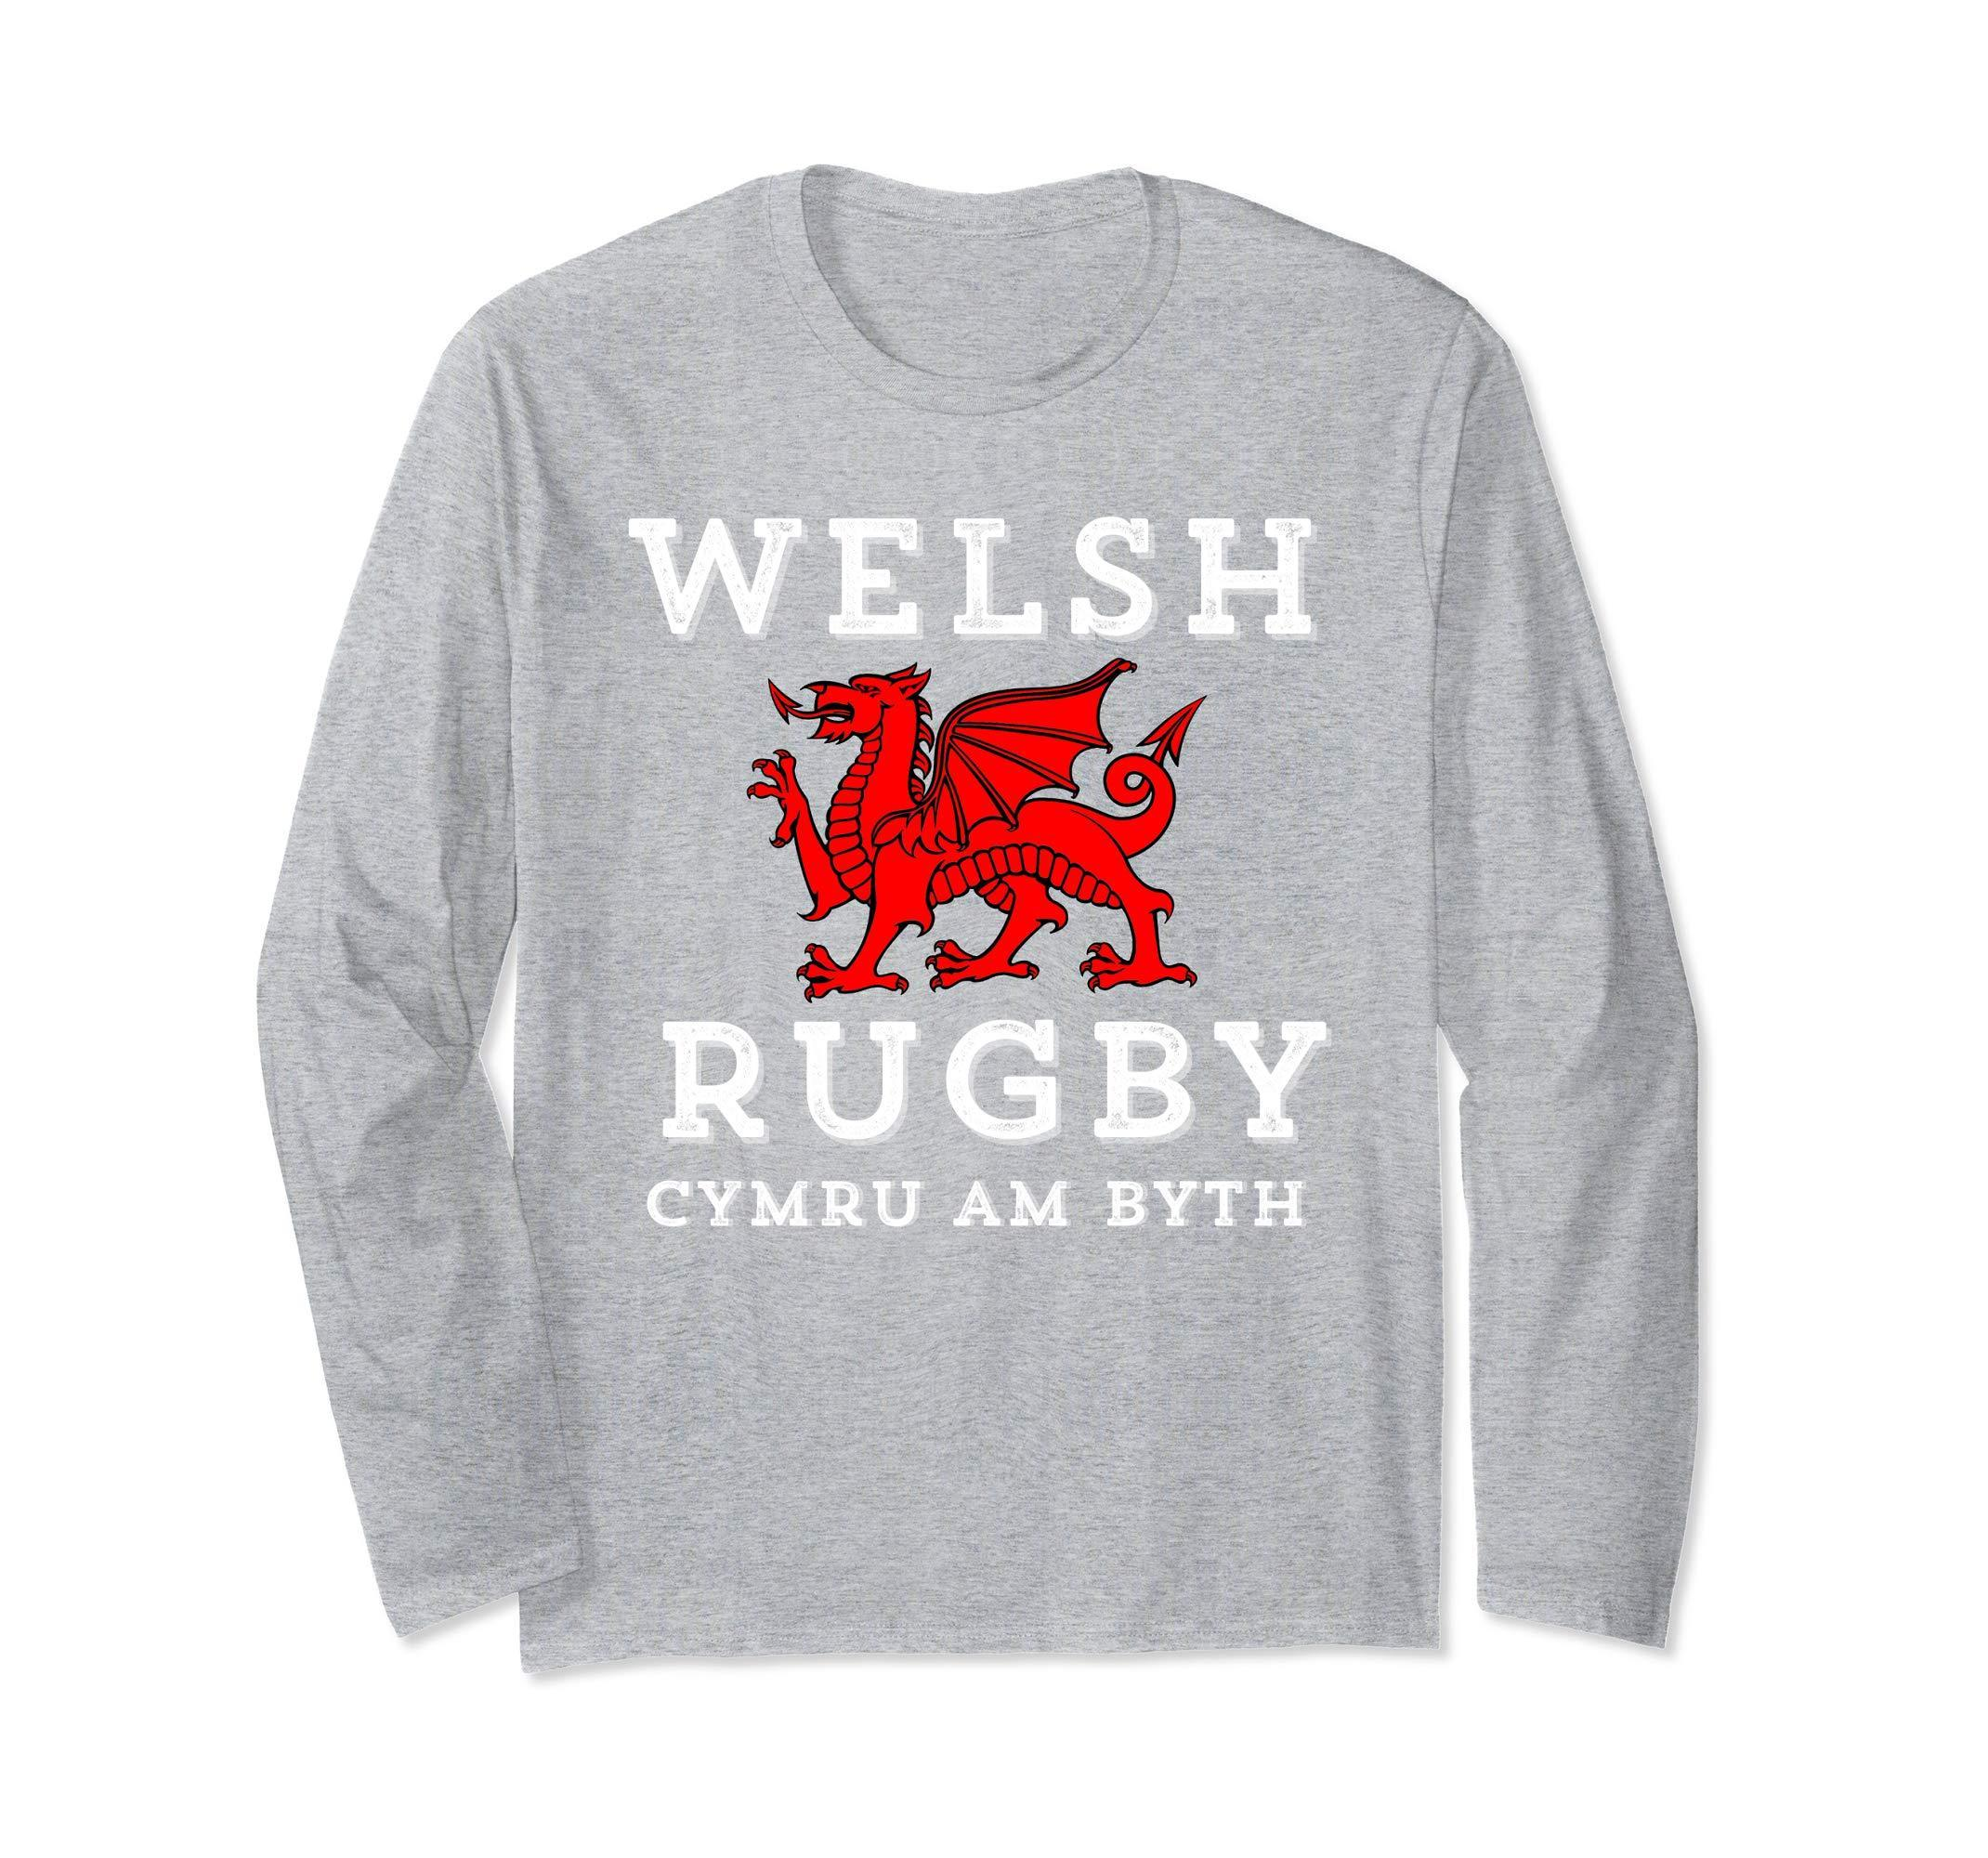 Shop From 1000 Unique Cymru Am Byth Welsh Rugby Wales Forever Tee Top Shirts